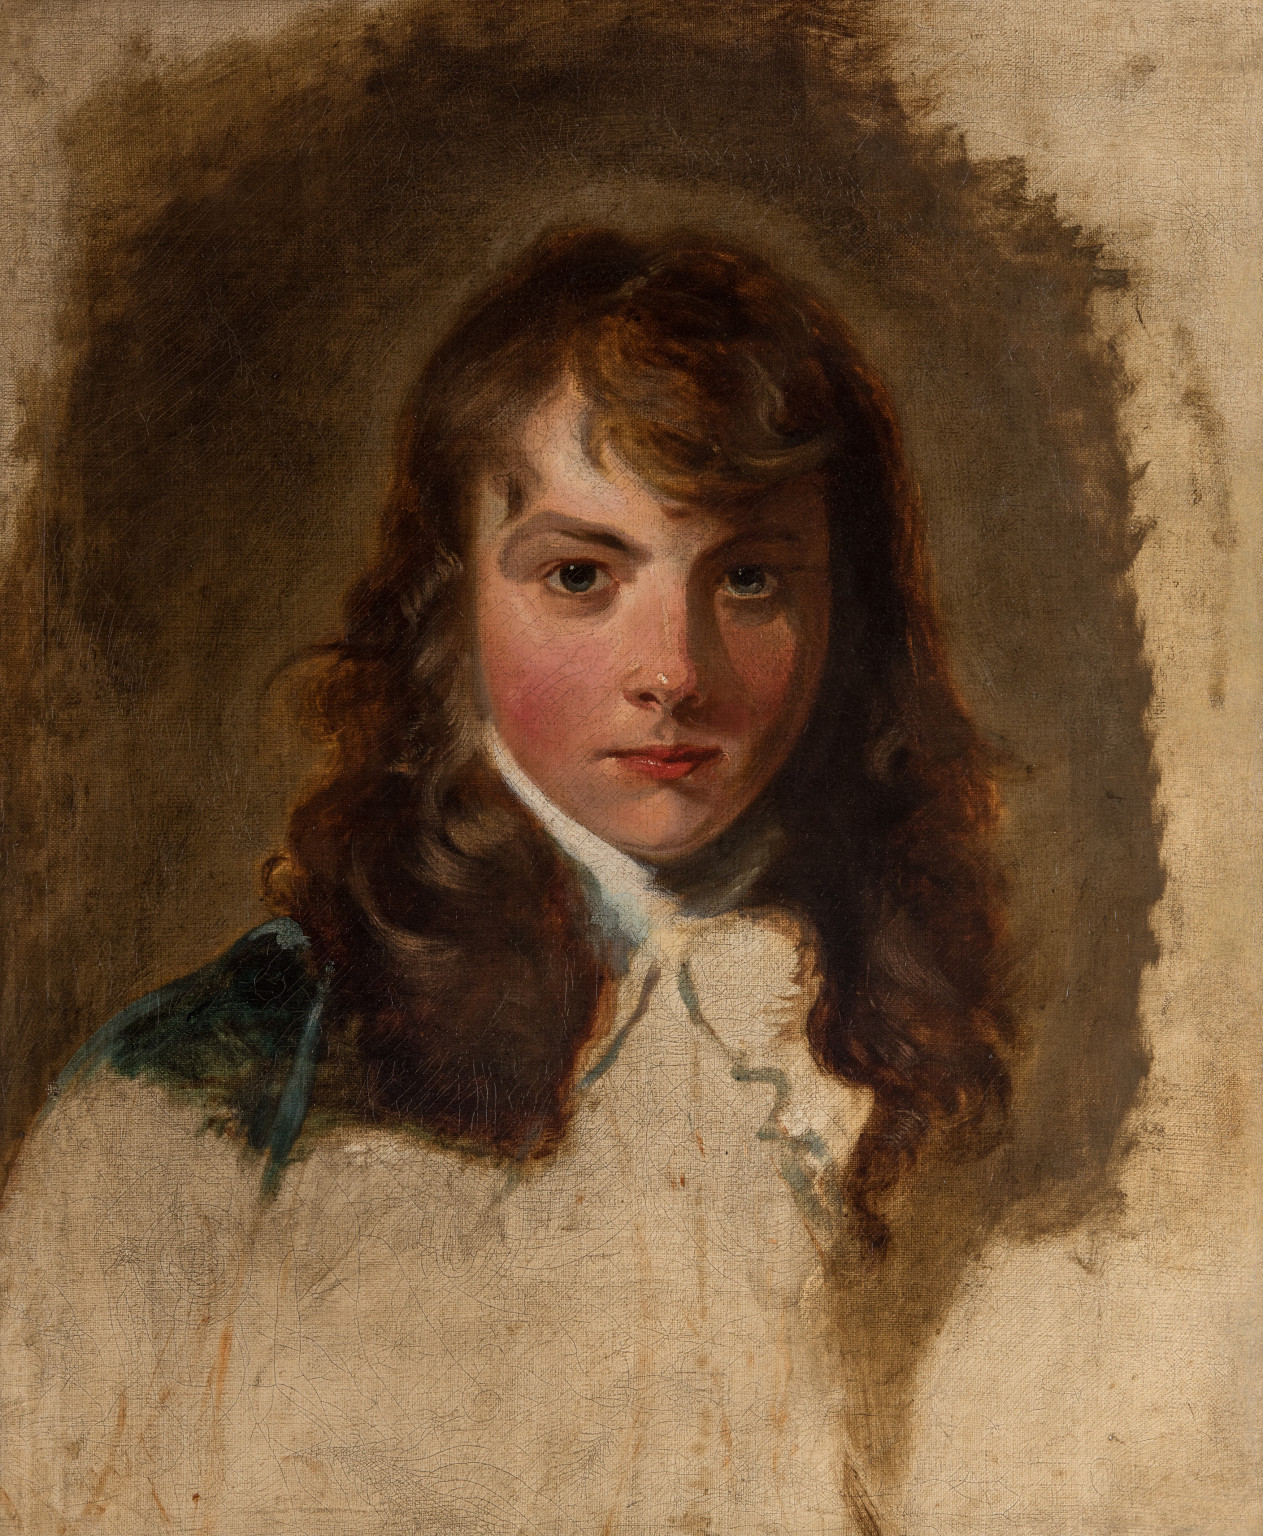 Unfinished Portrait of Arthur Atherley (1772–1844) Oil on canvas, 1791